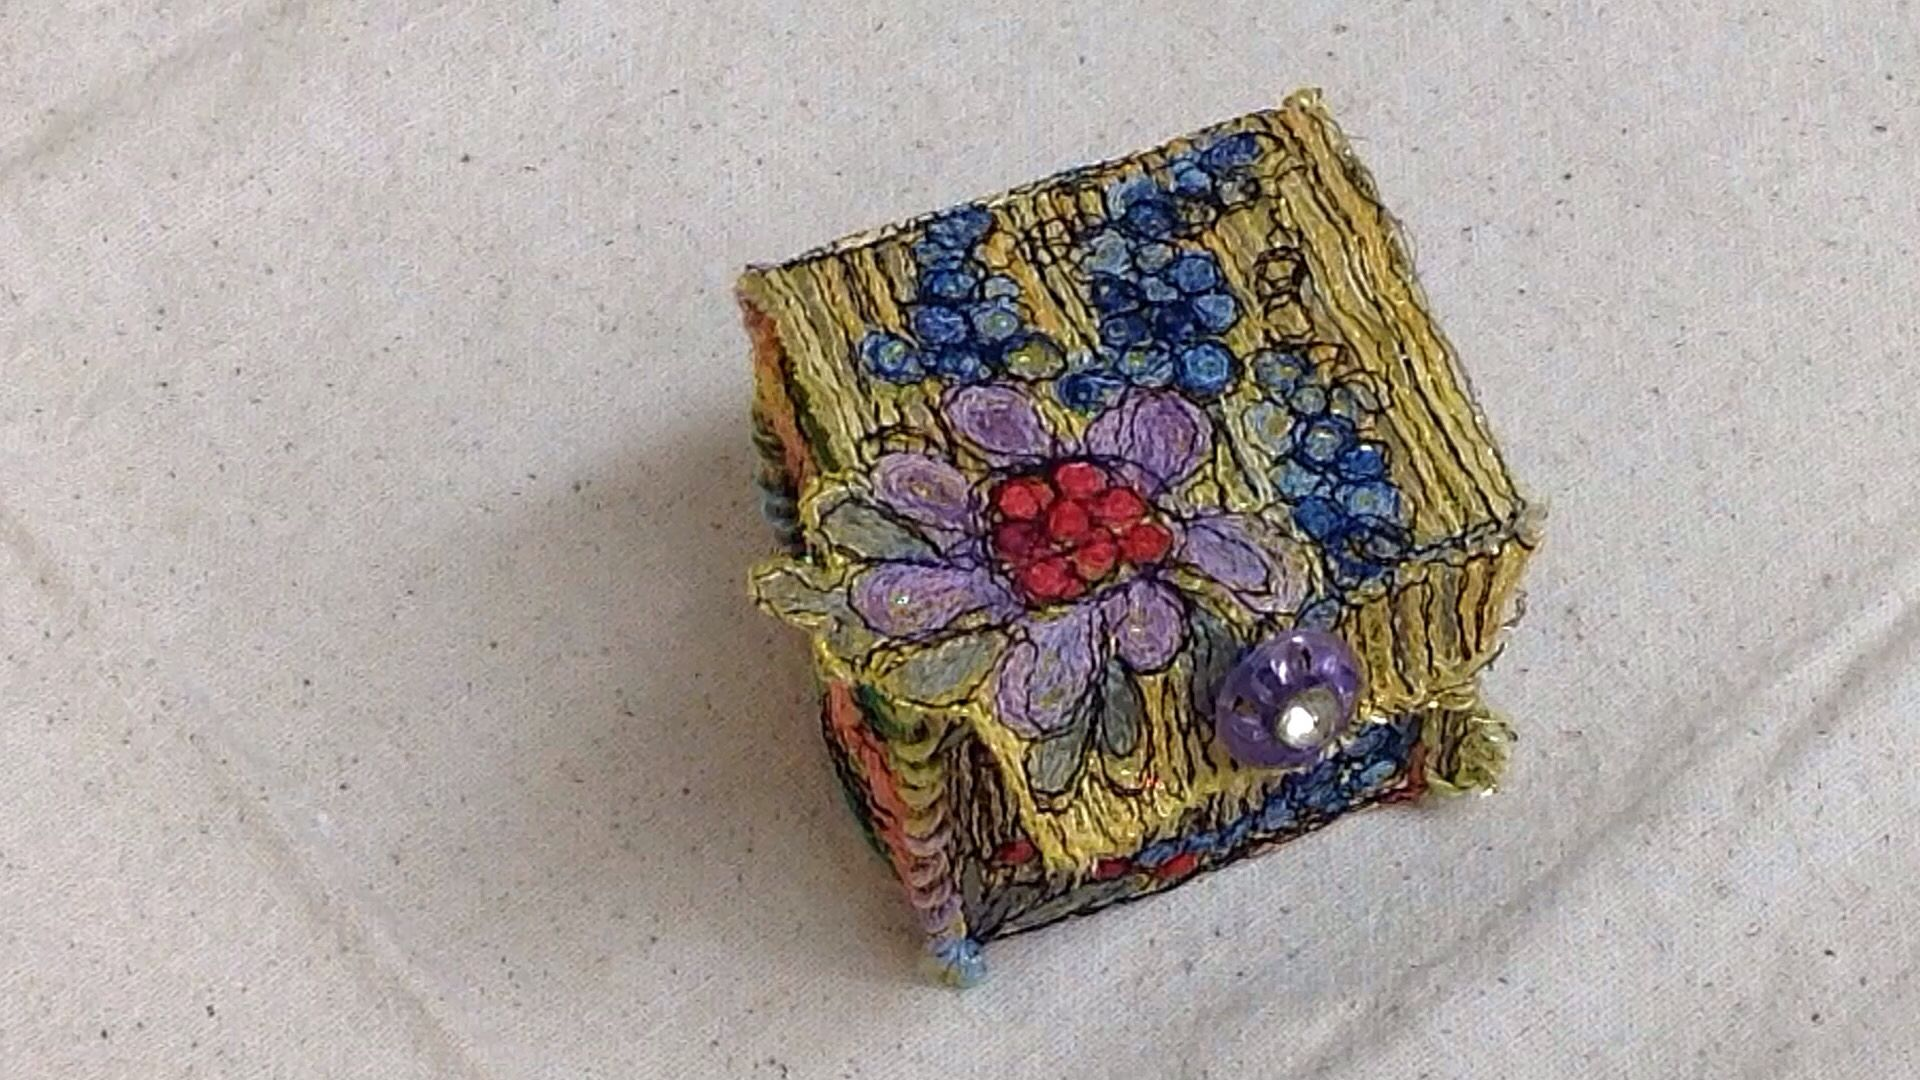 Threadpainted treasure box stitched onto netting by Terry White. Watch the tutorials on YouTube   https://m.youtube.com/watch?v=HwCj2TGeQzk